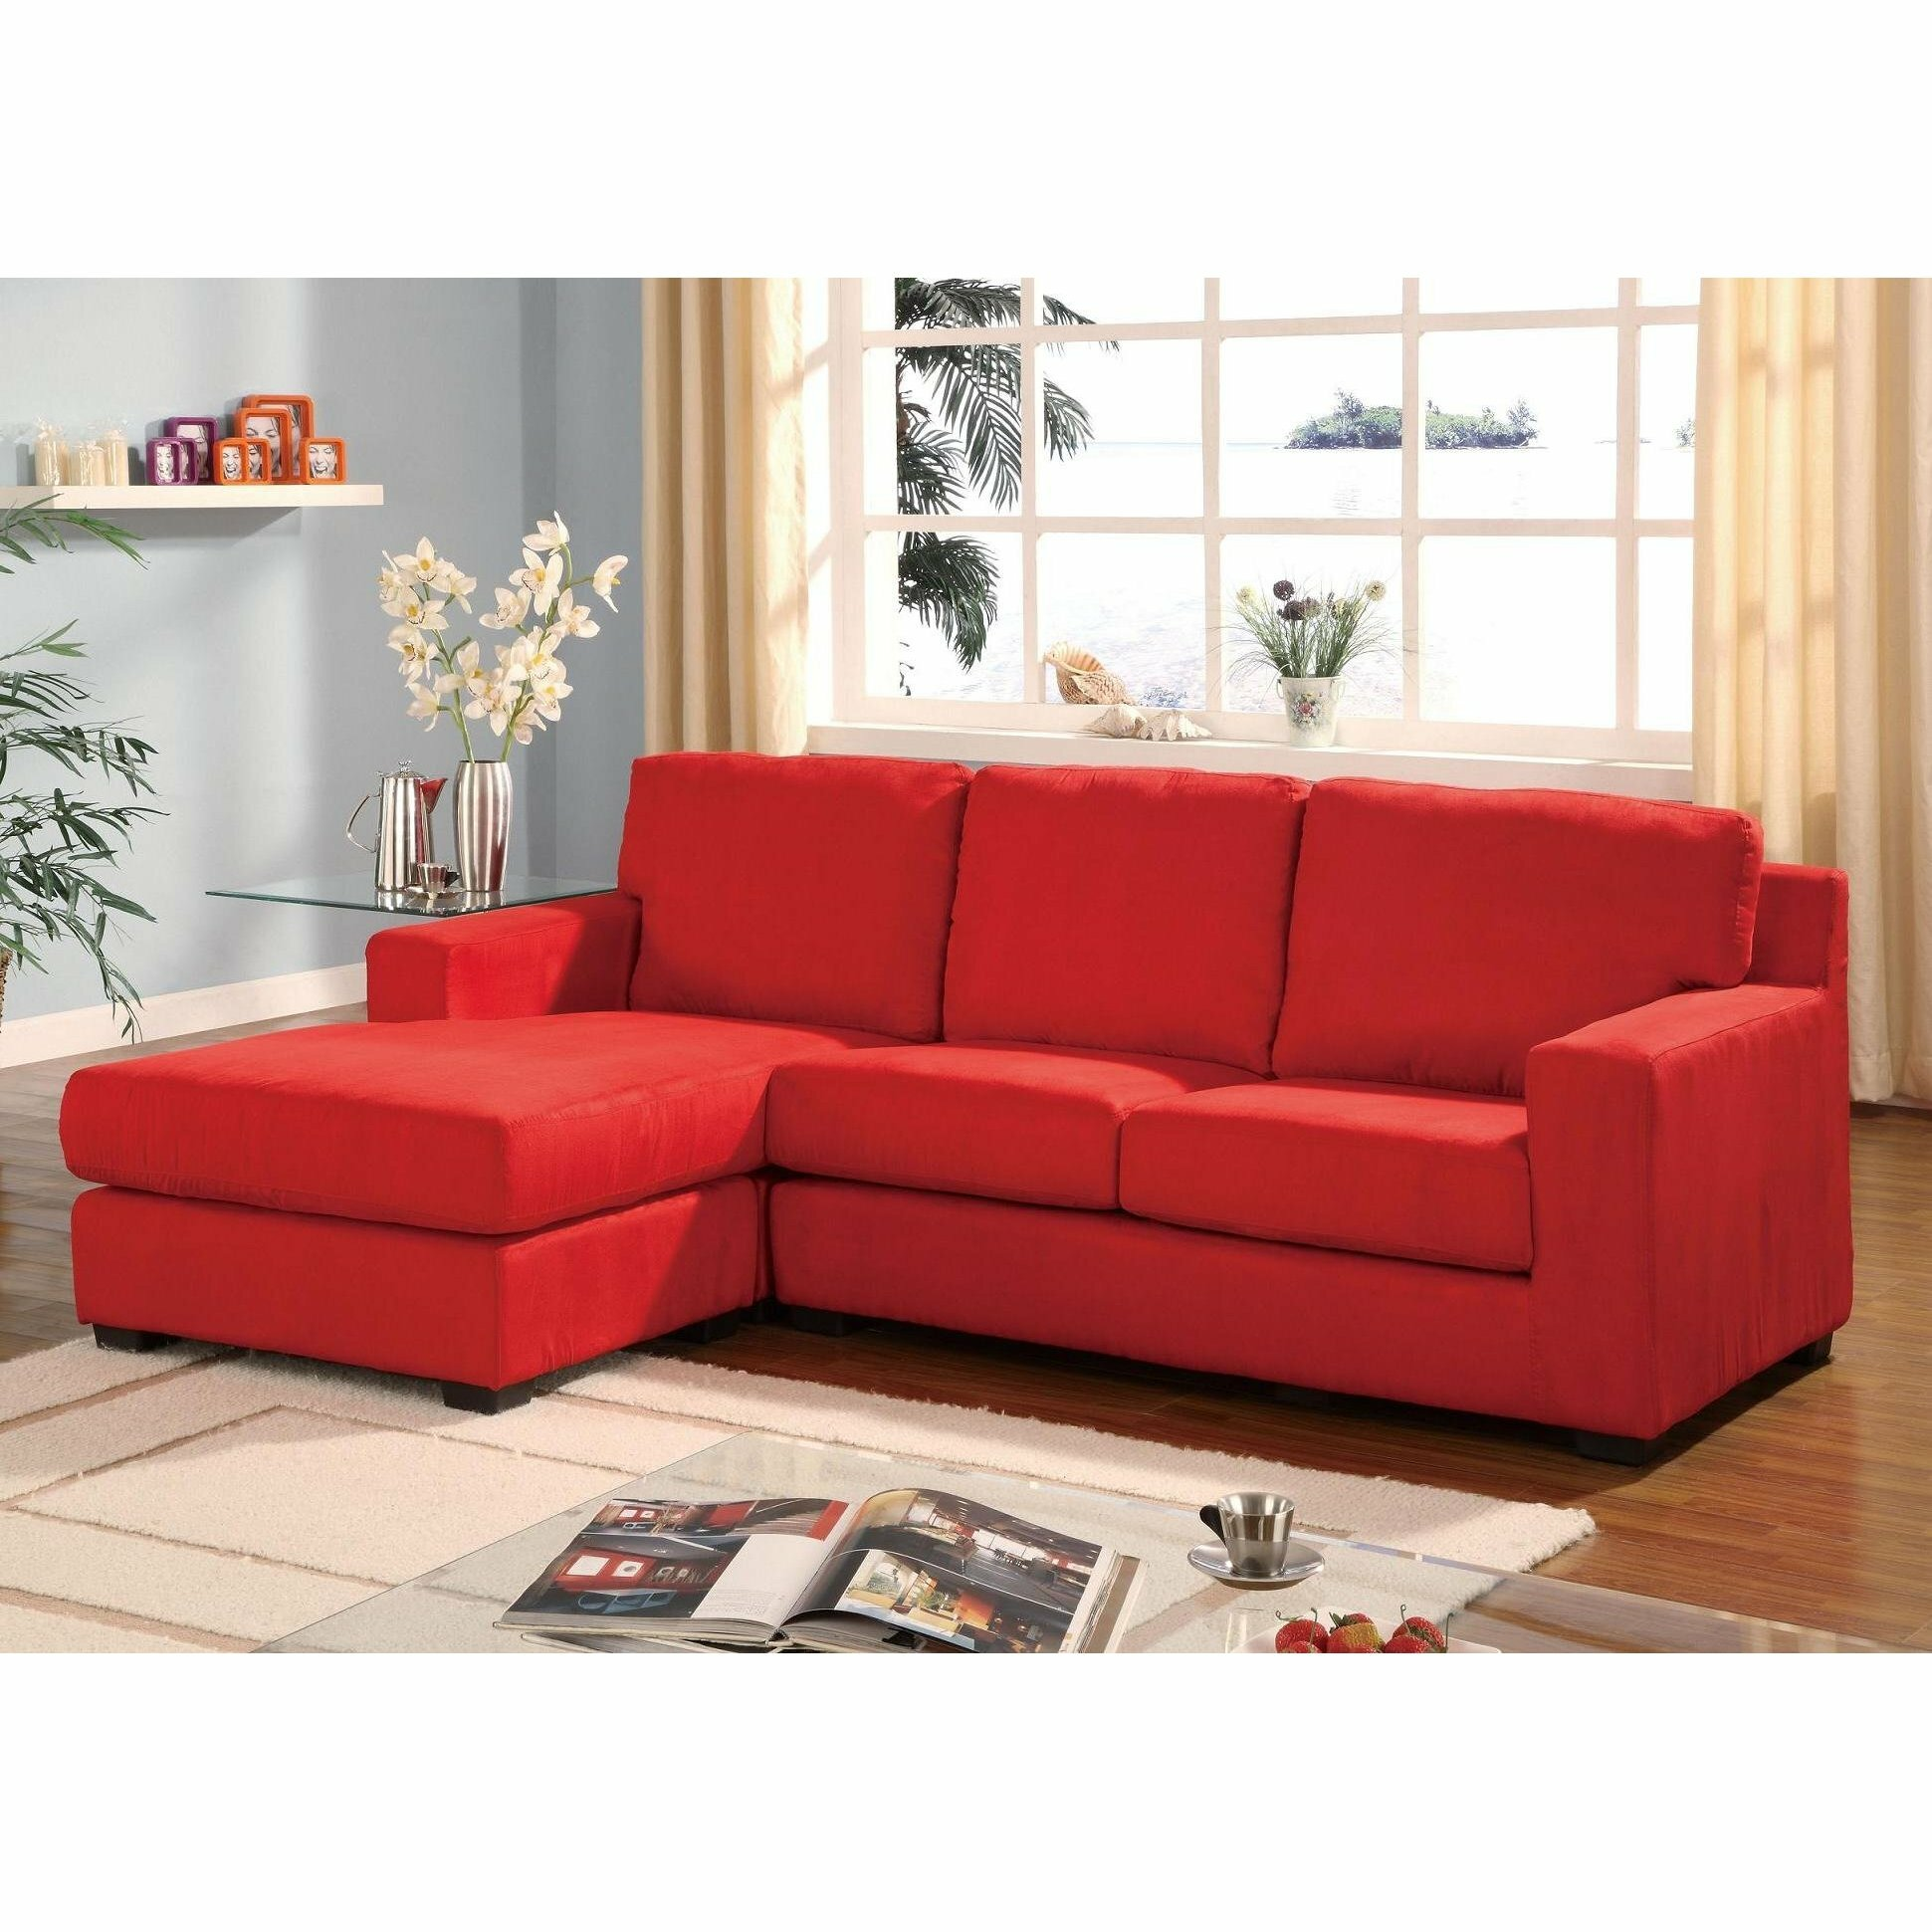 Sofas Luxury Your Living Room Sofas Design With Red